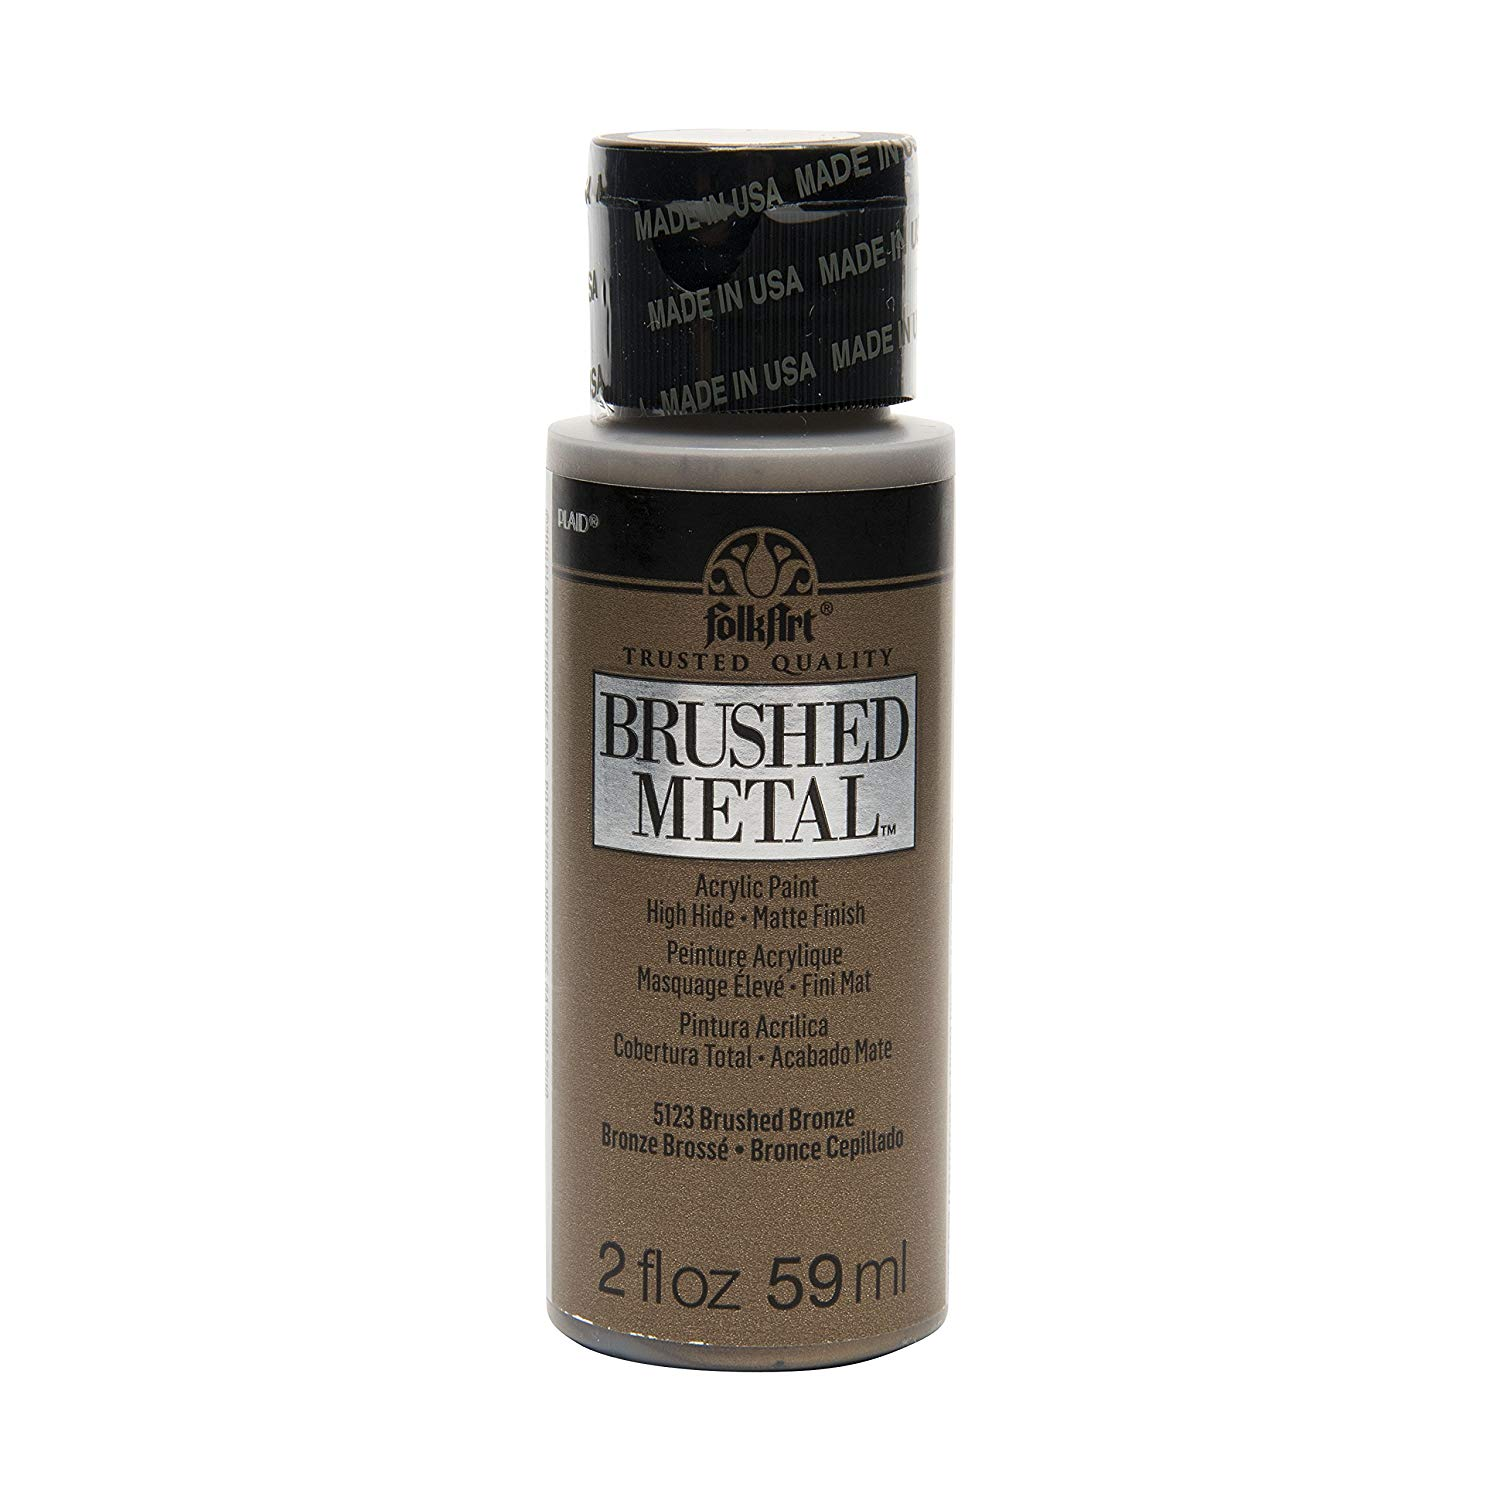 FolkArt Brushed Metal Paint in Assorted Colors (2 oz), 5123 Bronze